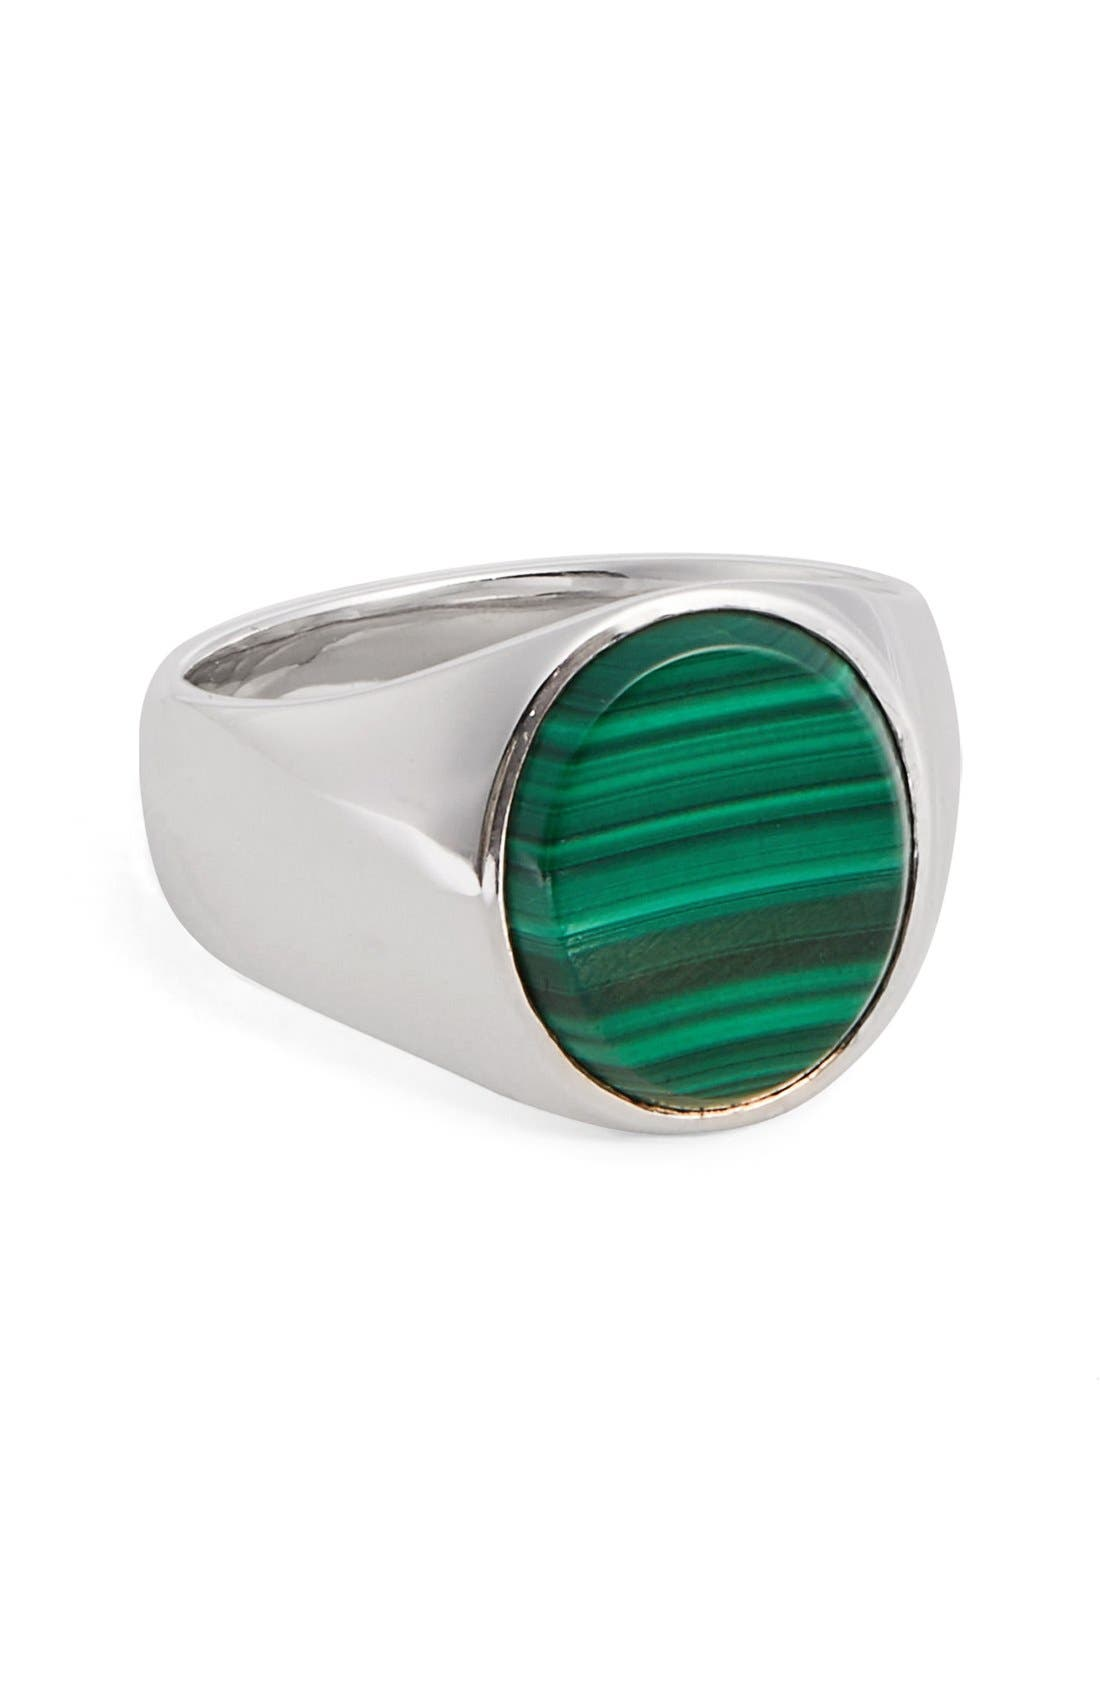 Tom Wood 'Patriot Collection' Oval Malachite Signet Ring